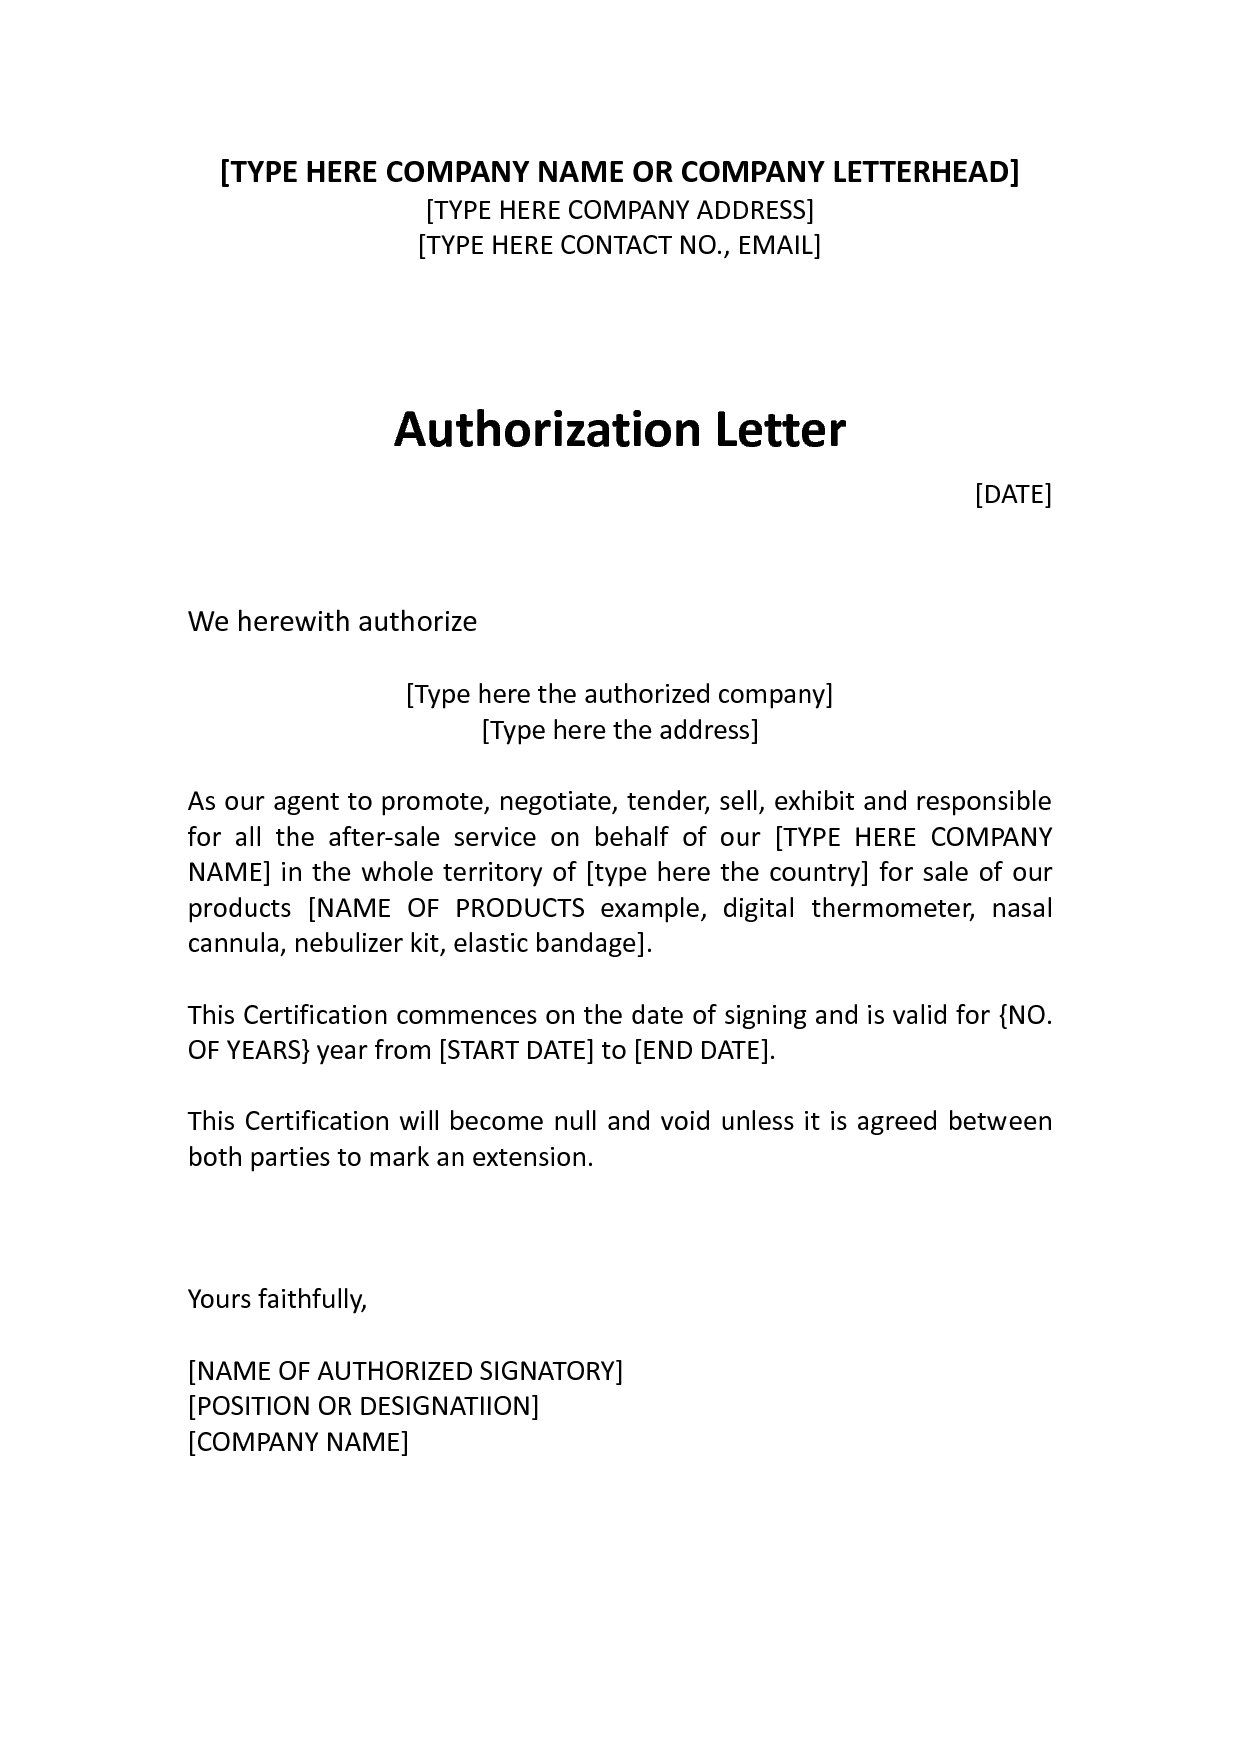 Authorization distributor letter sample distributor dealer authorization distributor letter sample distributor dealer authorization letter given by a company to its spiritdancerdesigns Image collections